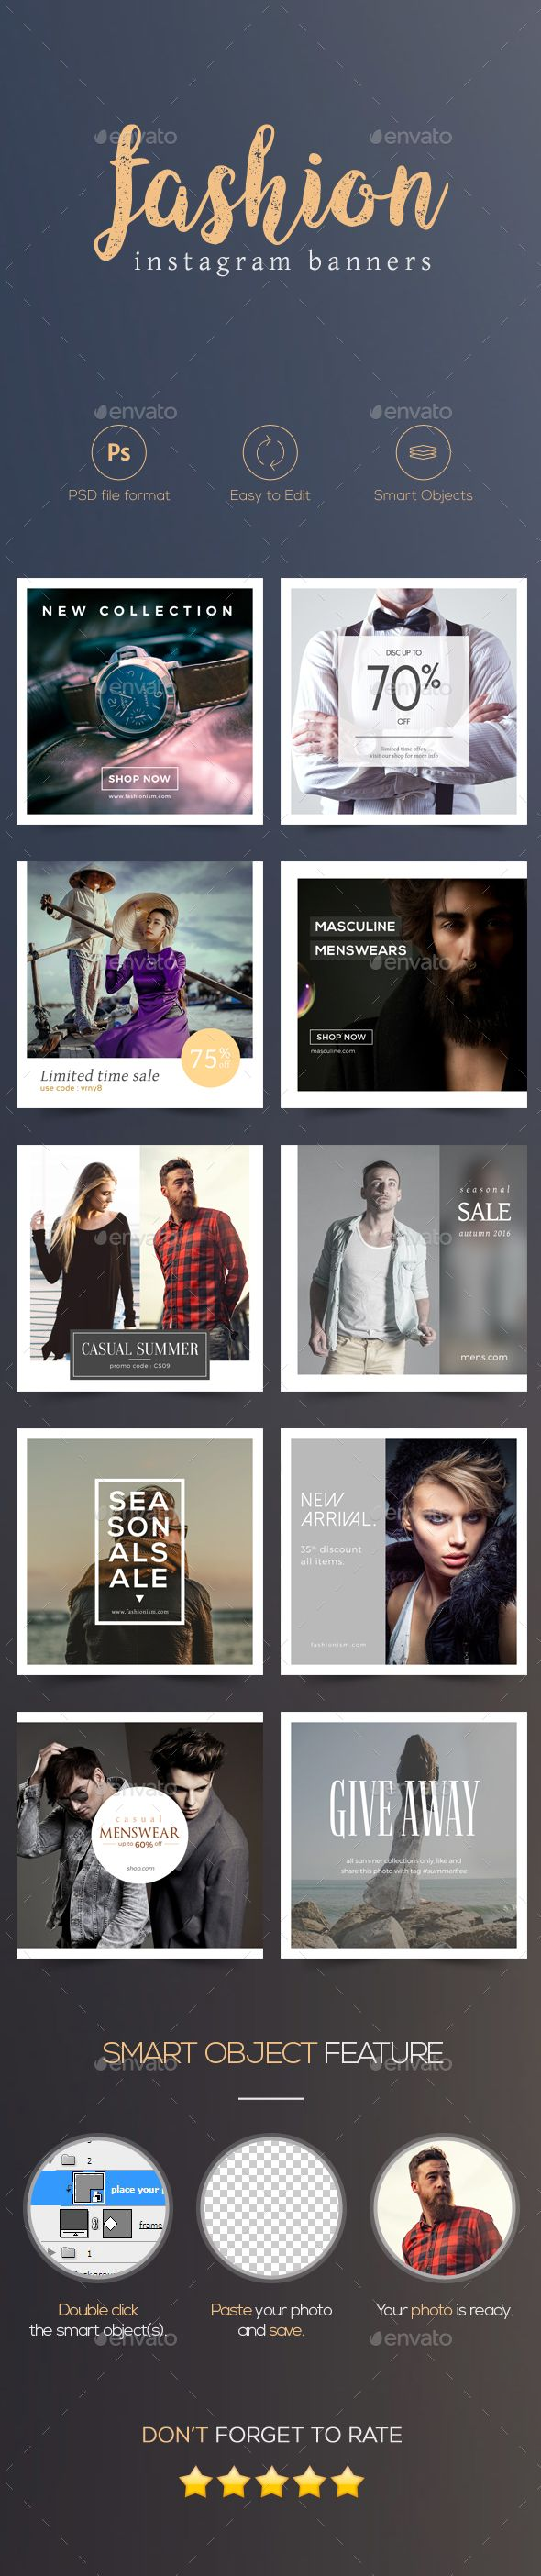 Best 25+ Social media design ideas on Pinterest